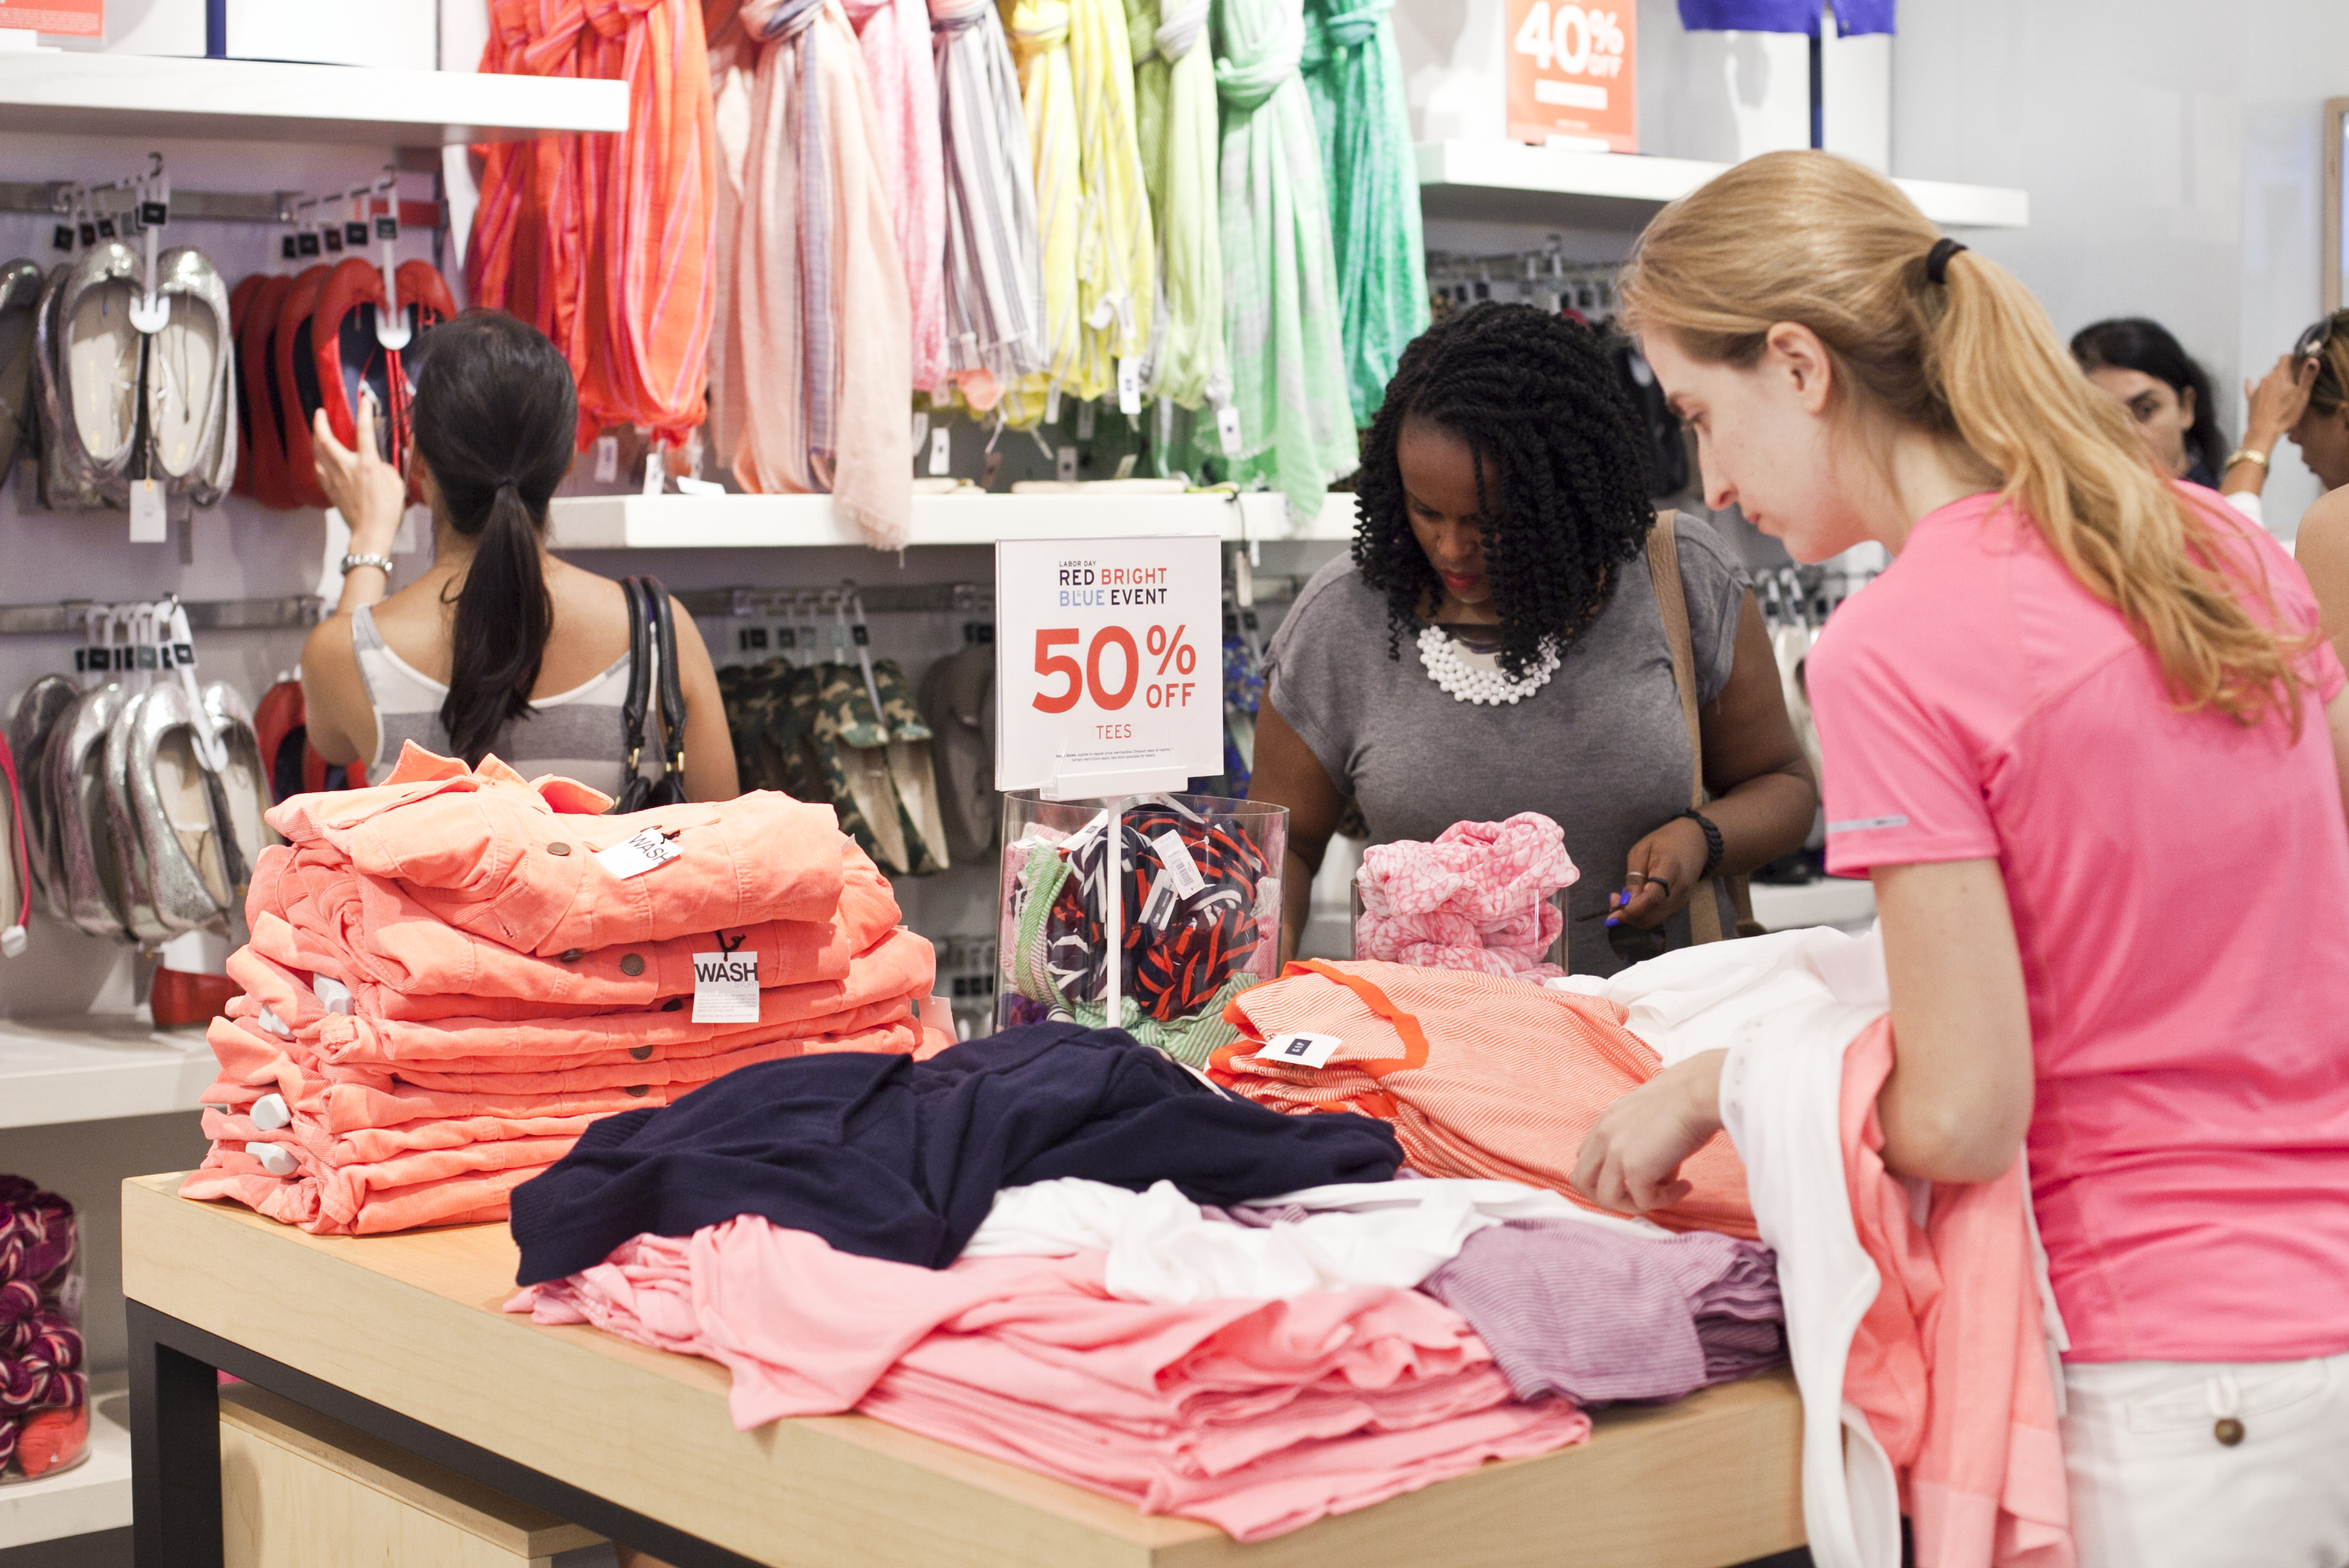 Discounts Lure Labor Day Shoppers